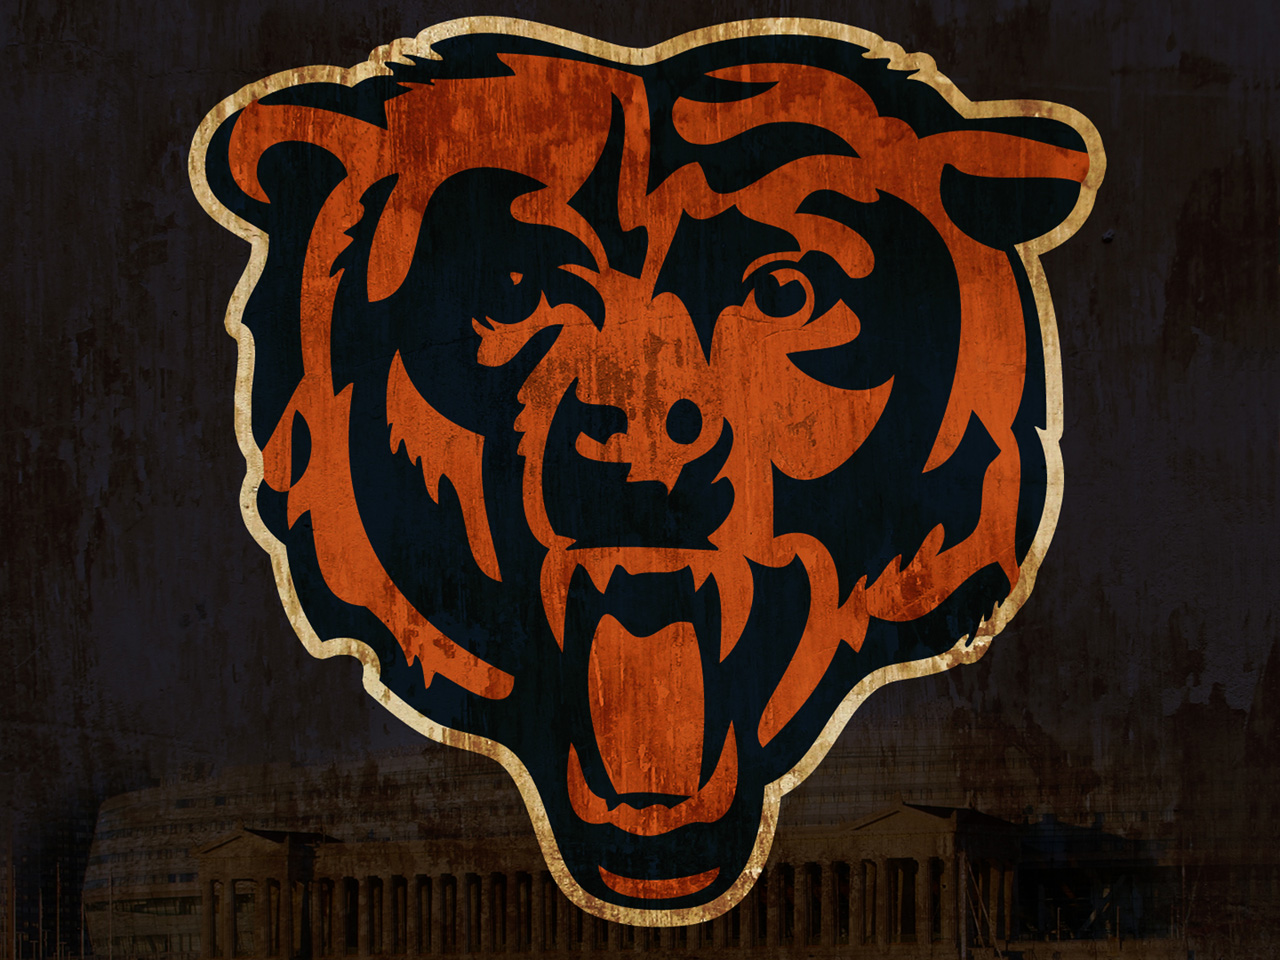 New Chicago Bears background Chicago Bears wallpapers 1280x960